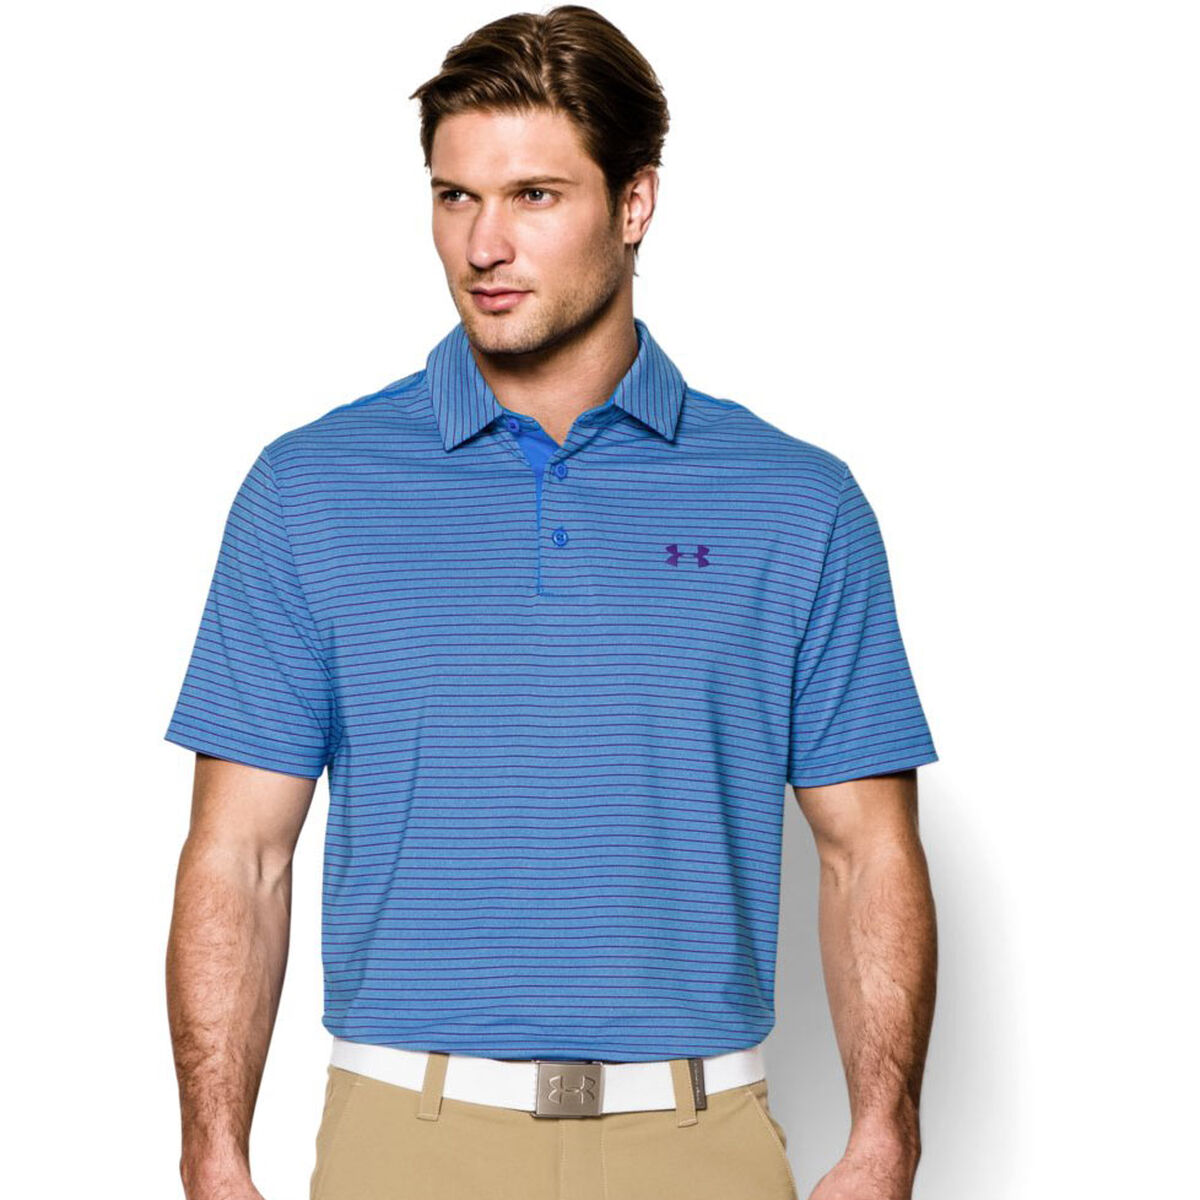 608dd11d Under Armour Heather Stripe Playoff Polo | PGA TOUR Superstore